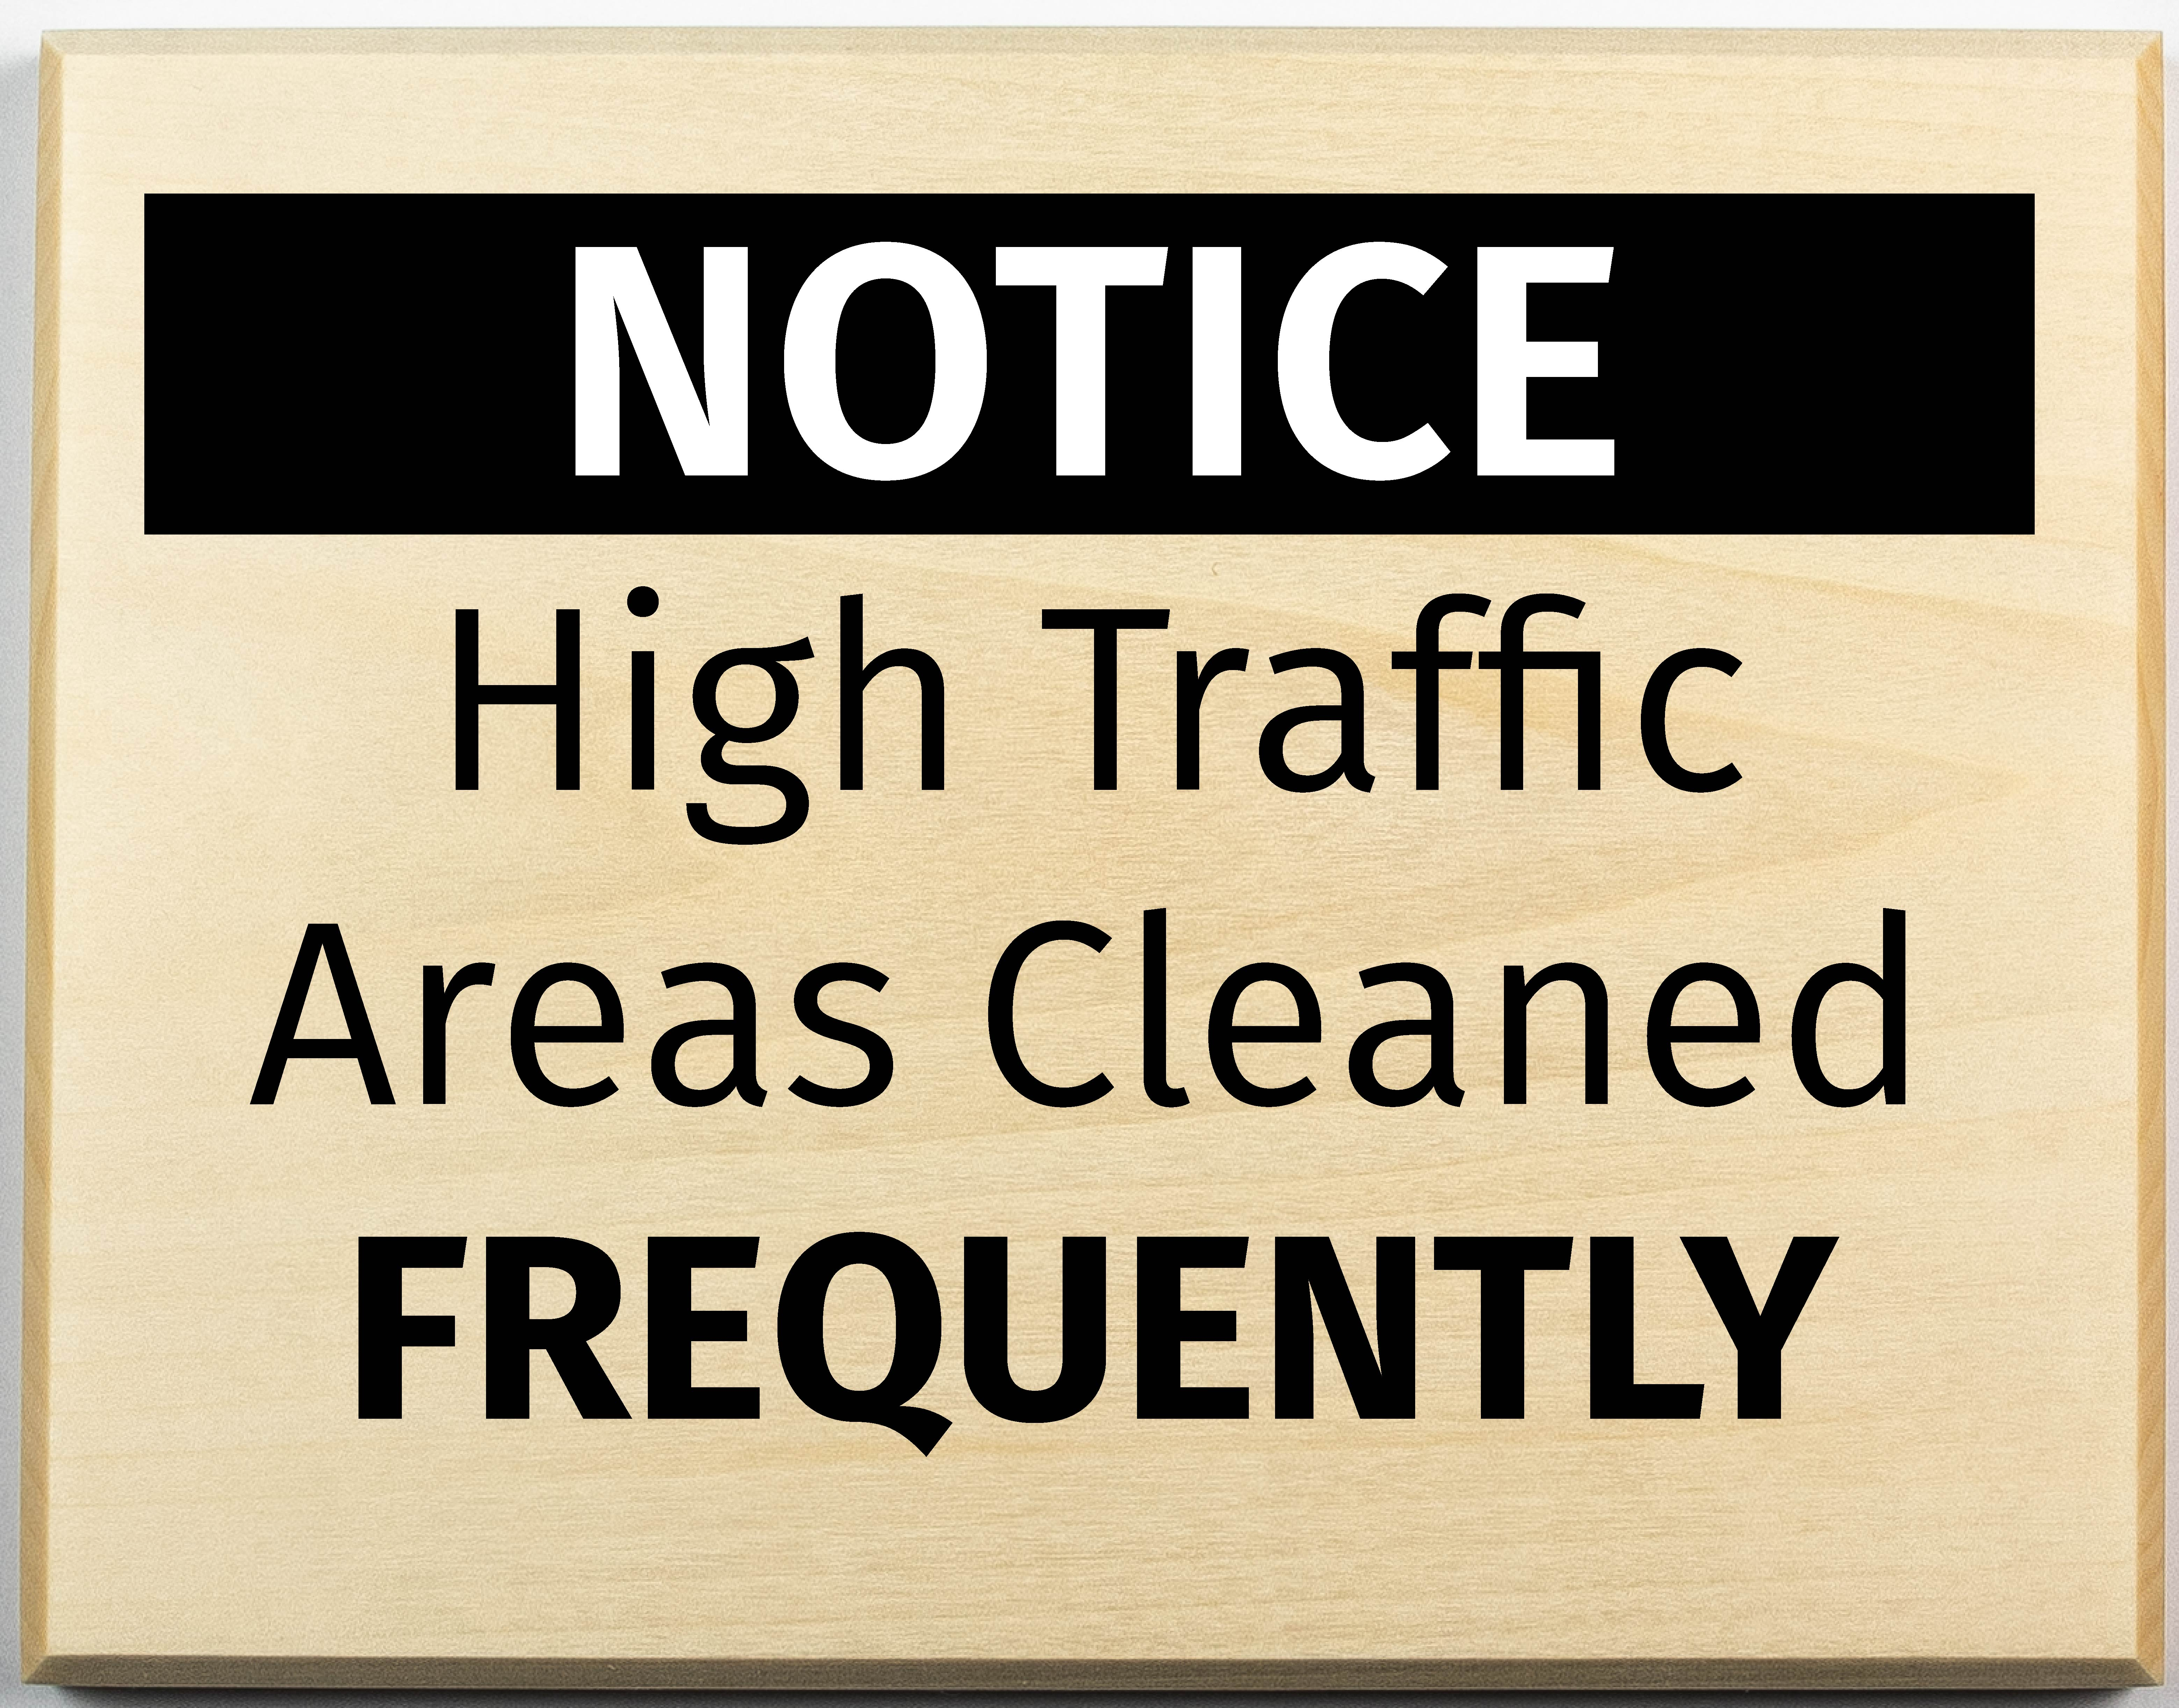 high traffic areas cleaned frequently sign